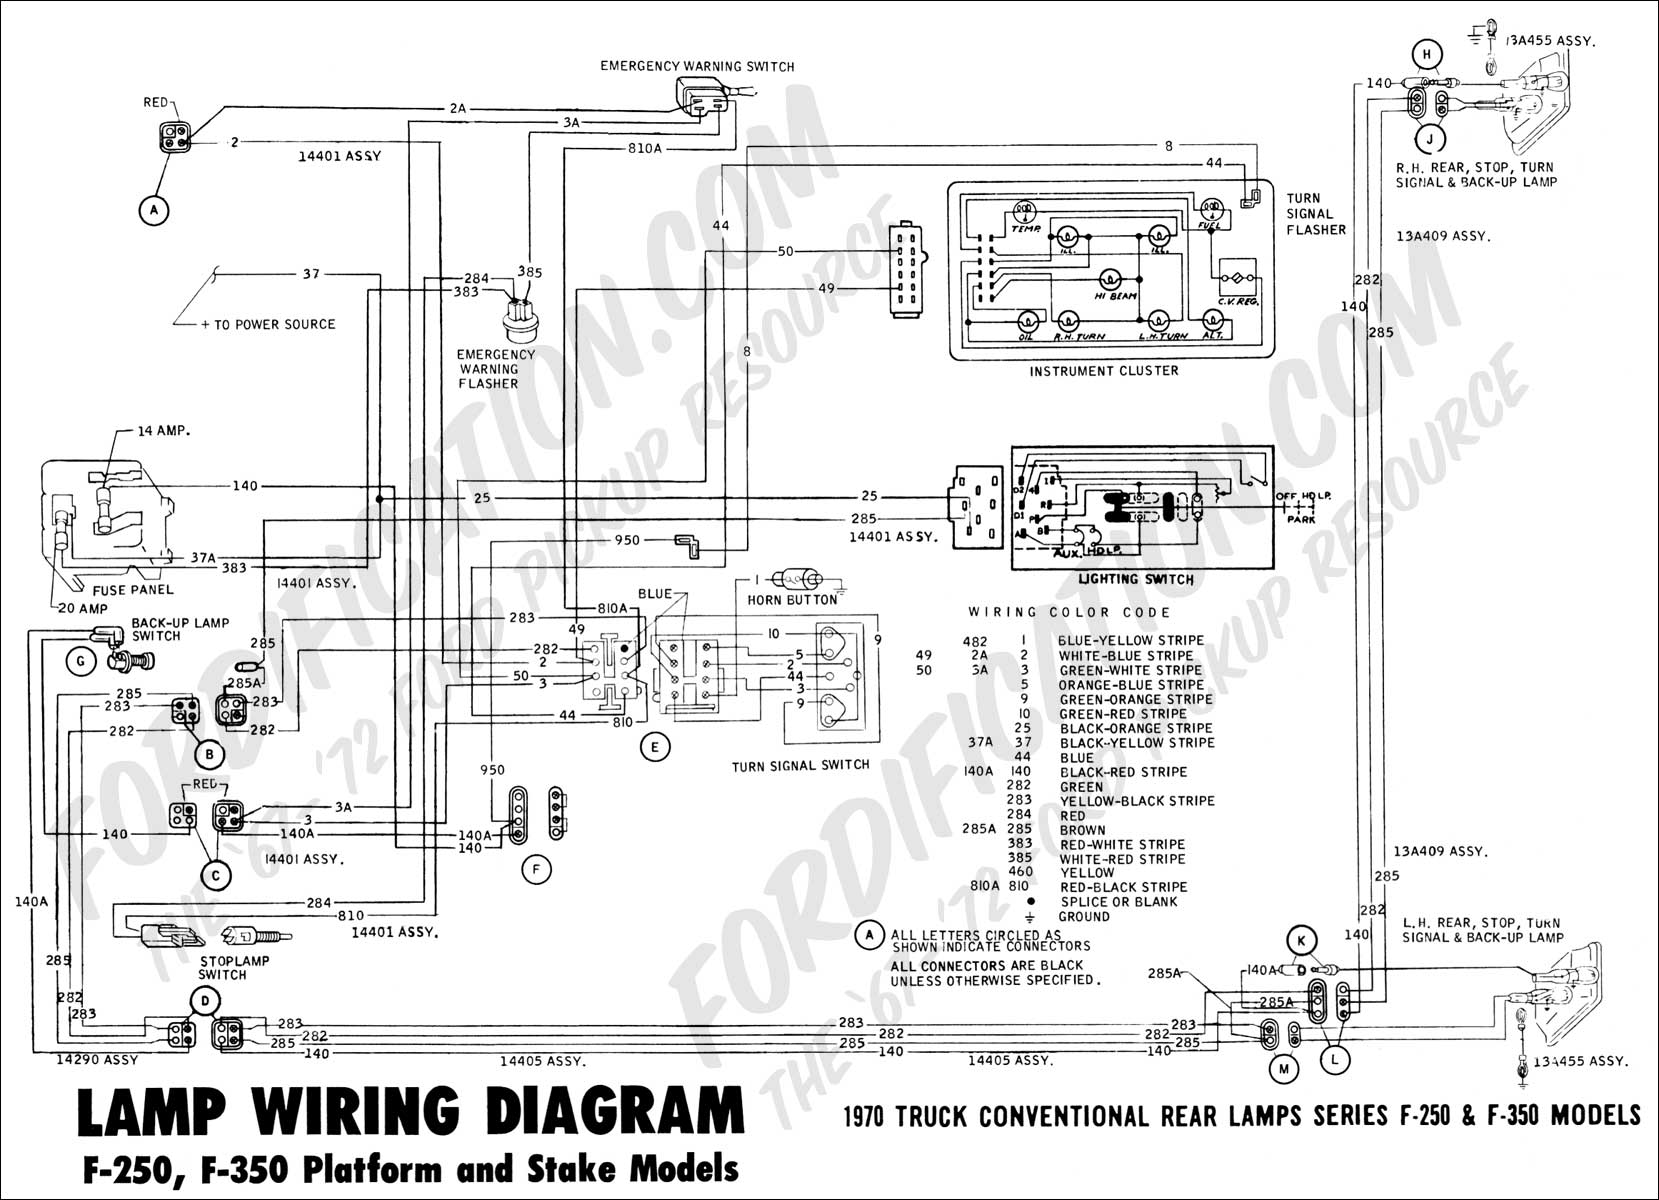 hight resolution of 2015 f250 ford super duty wiring diagram autos post 2001 f350 wiring diagram 1972 ford f250 ignition wiring diagram